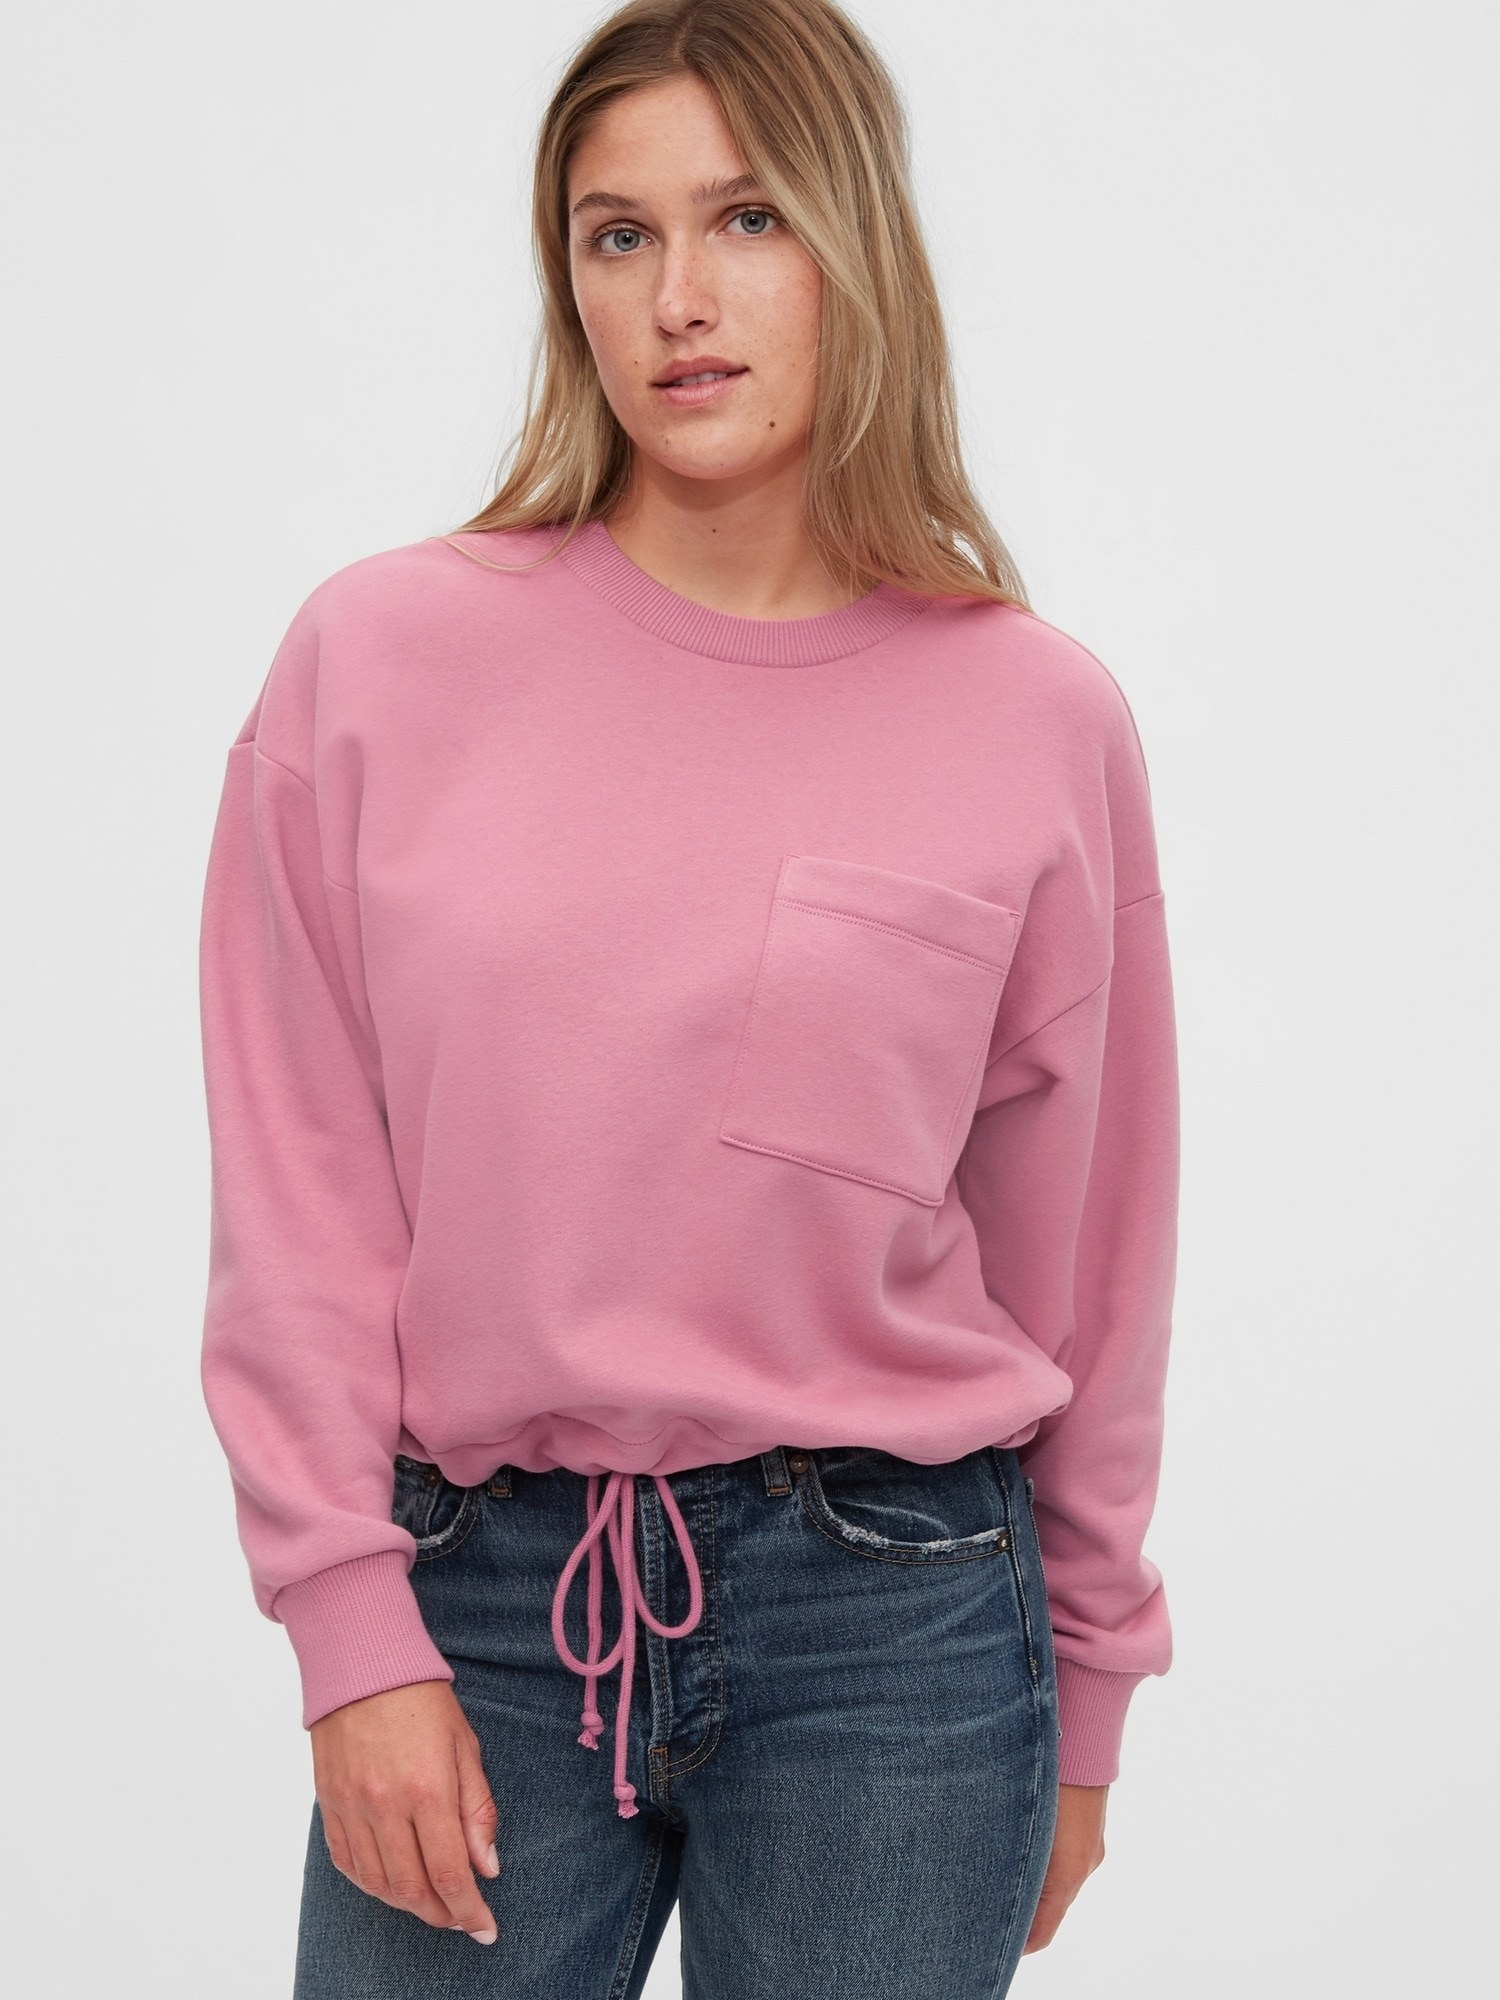 The pink sweatshirt, which has a chest pocket and drawstring on the bottom